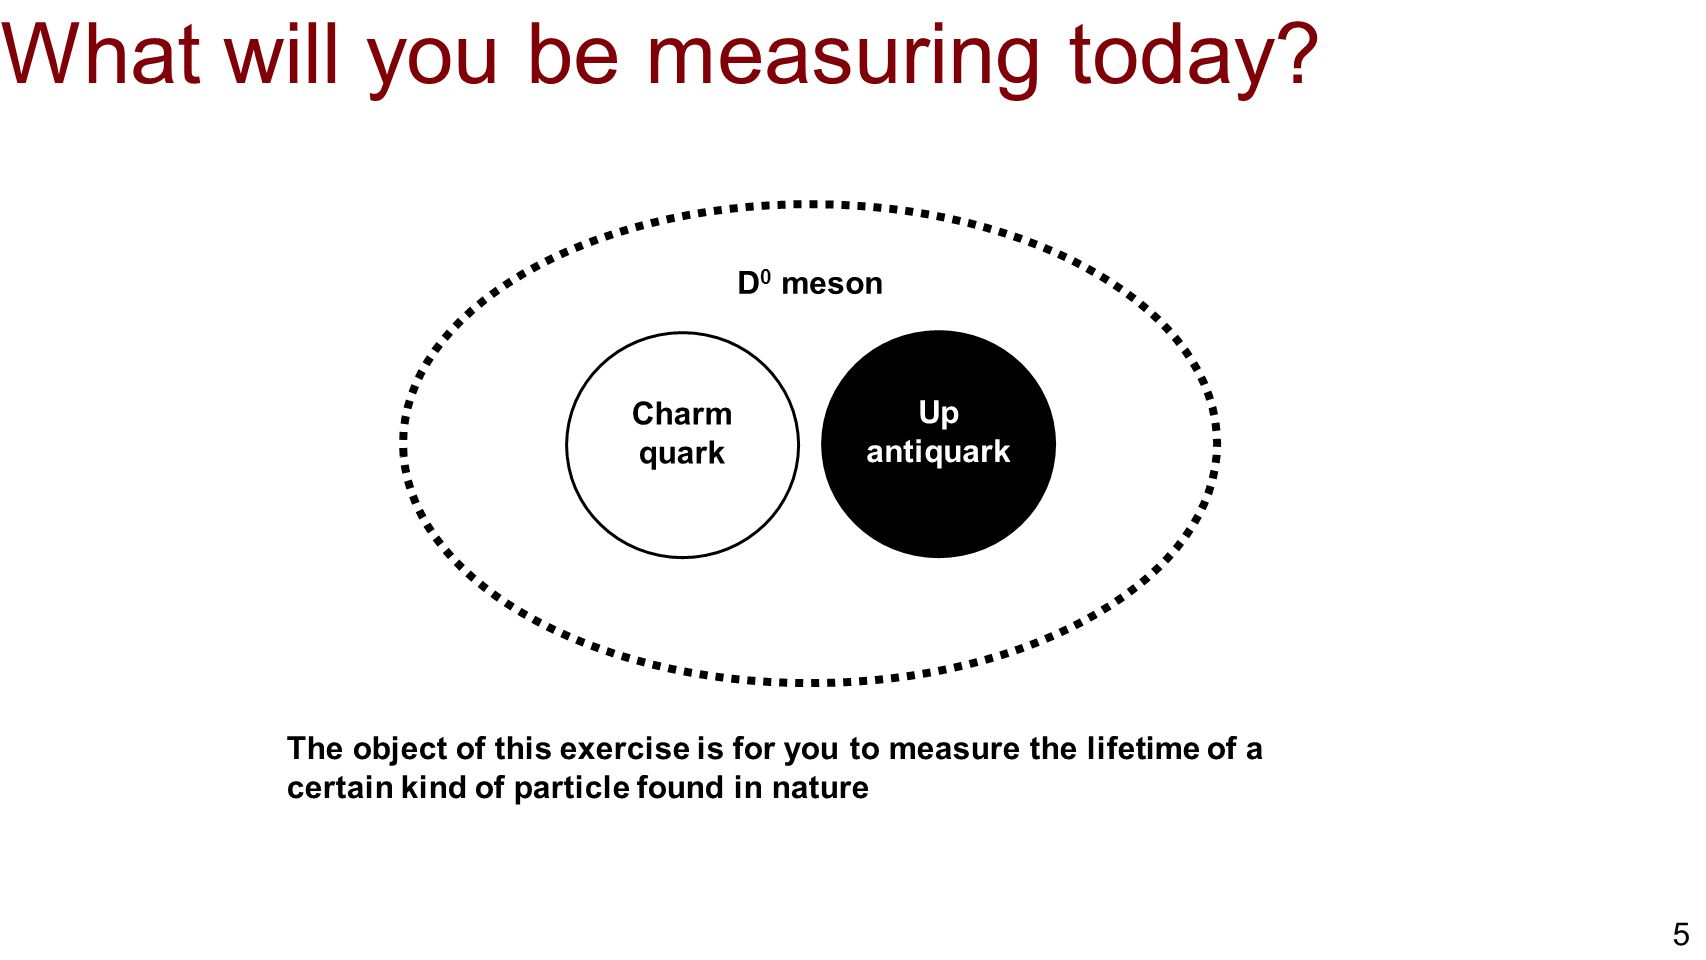 What will you be measuring today